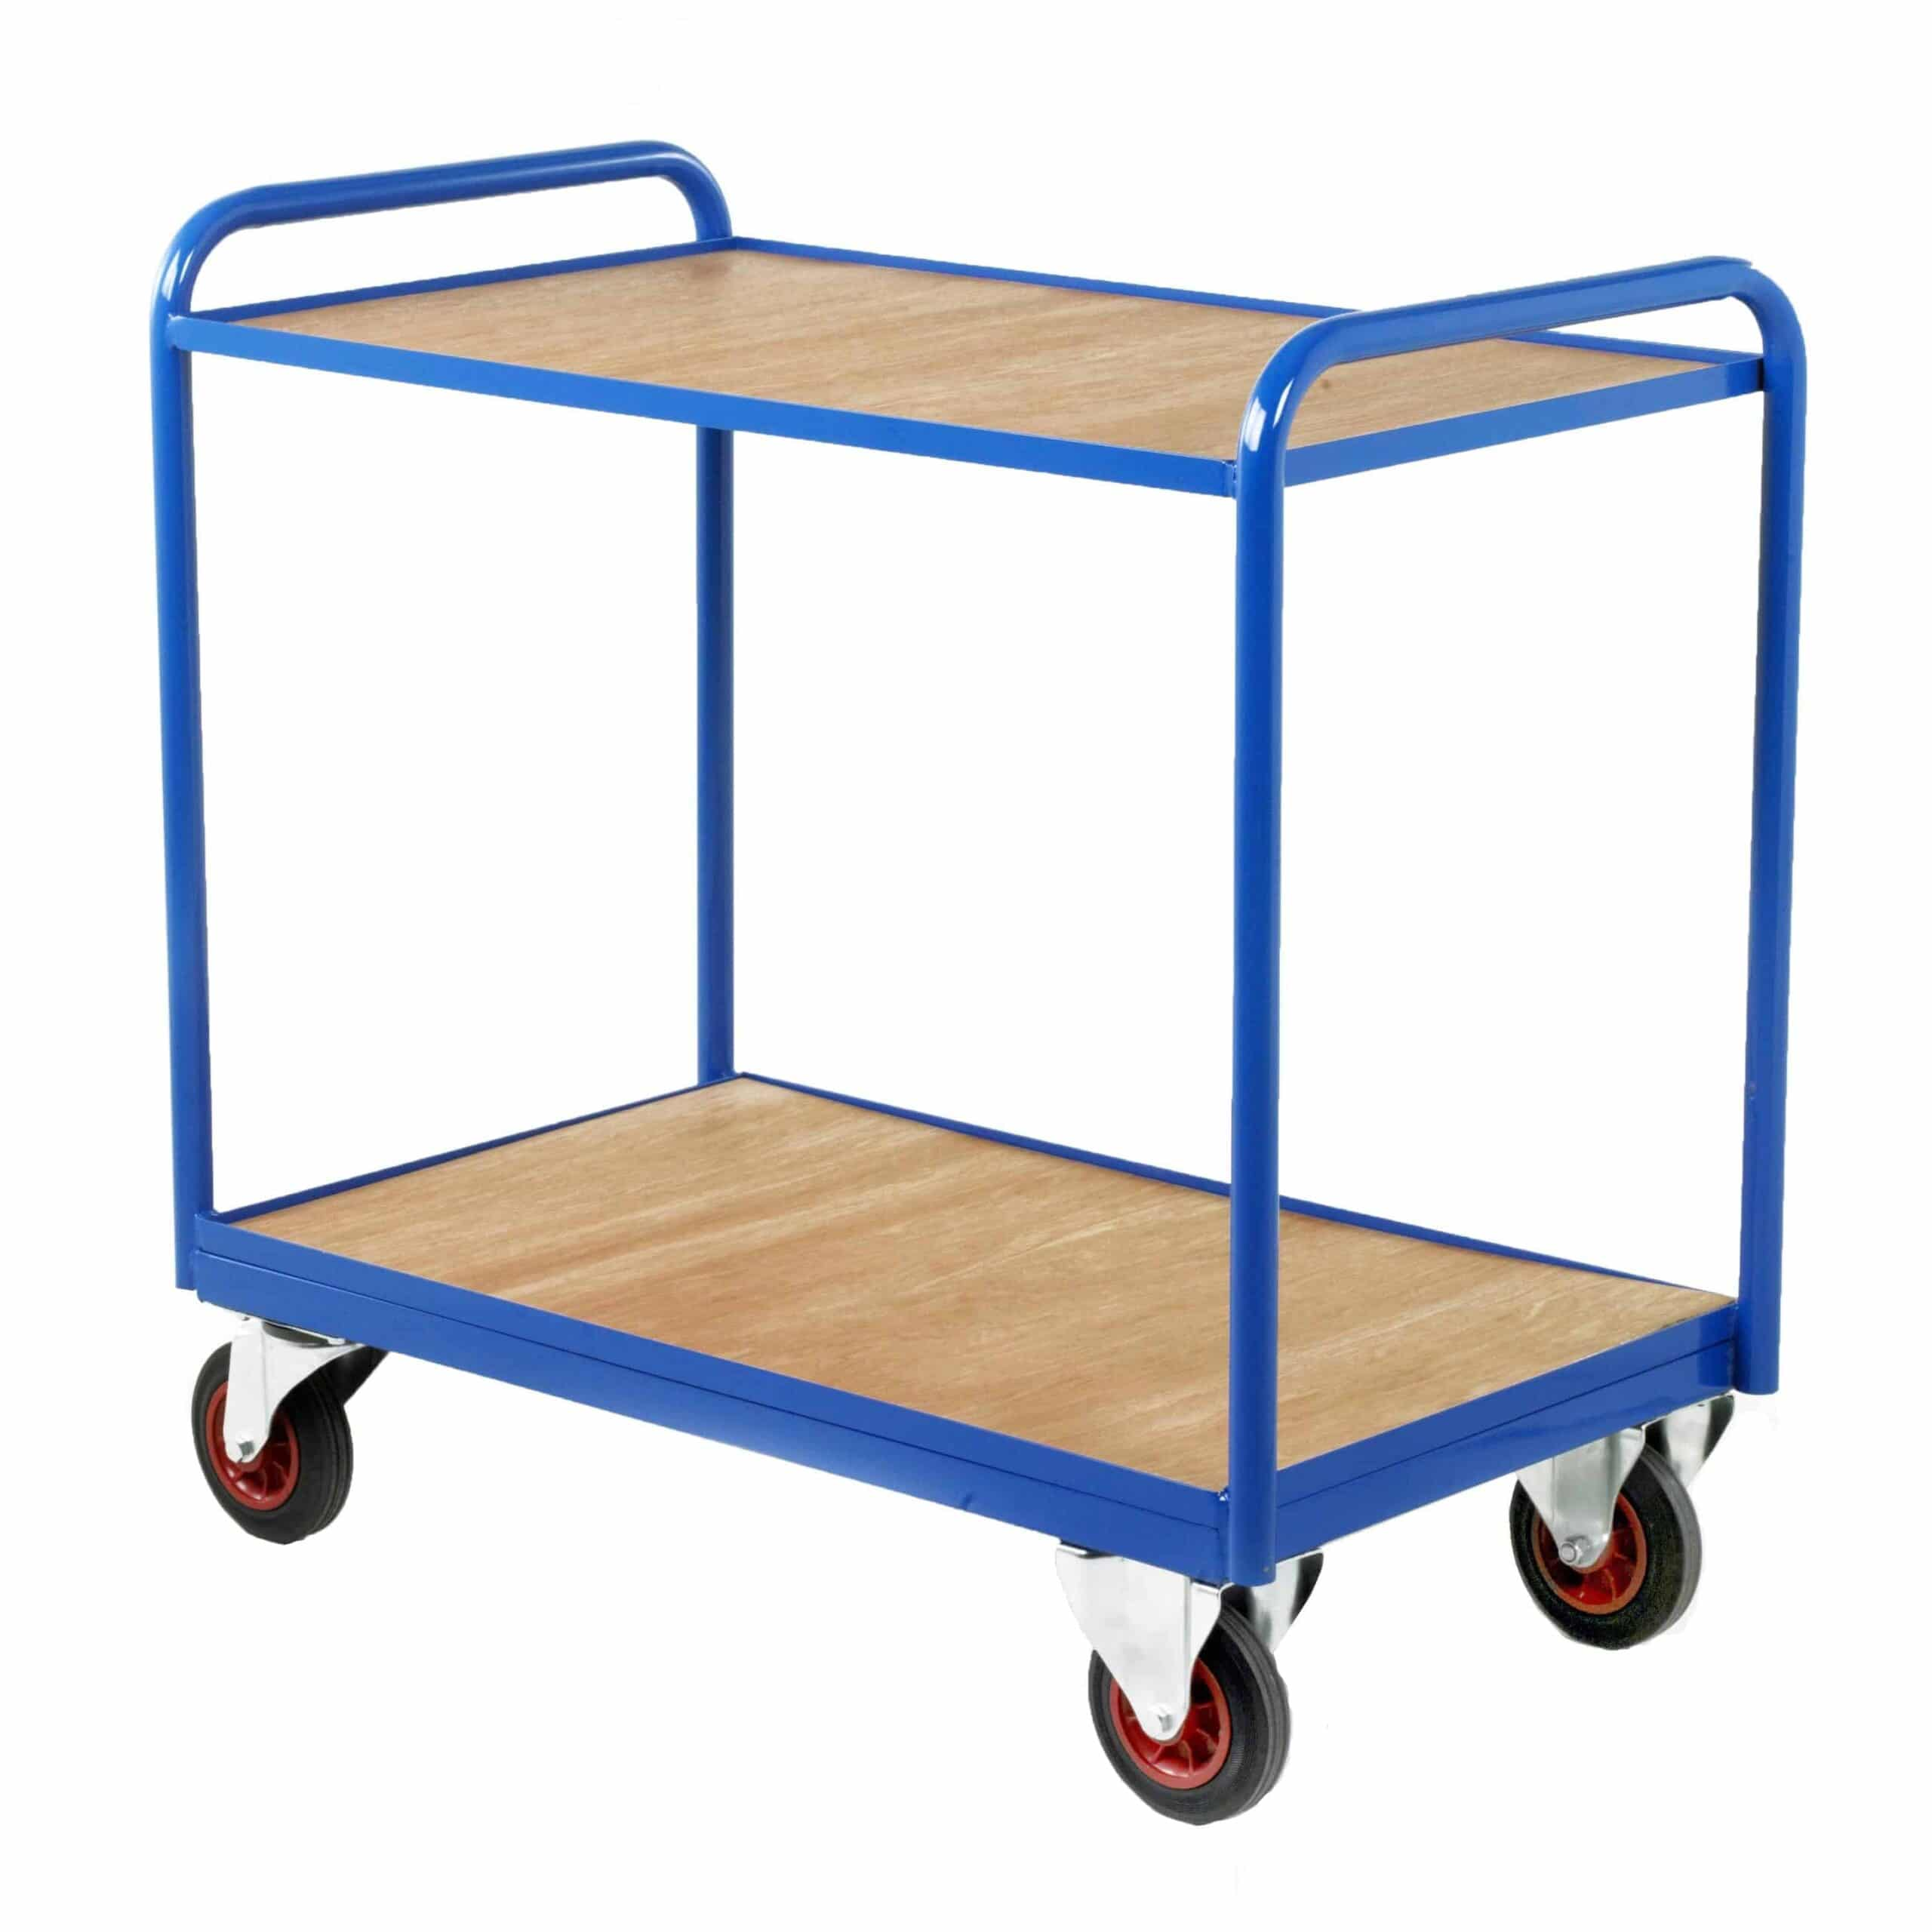 Timber Panel Industrial Tray Trolleys